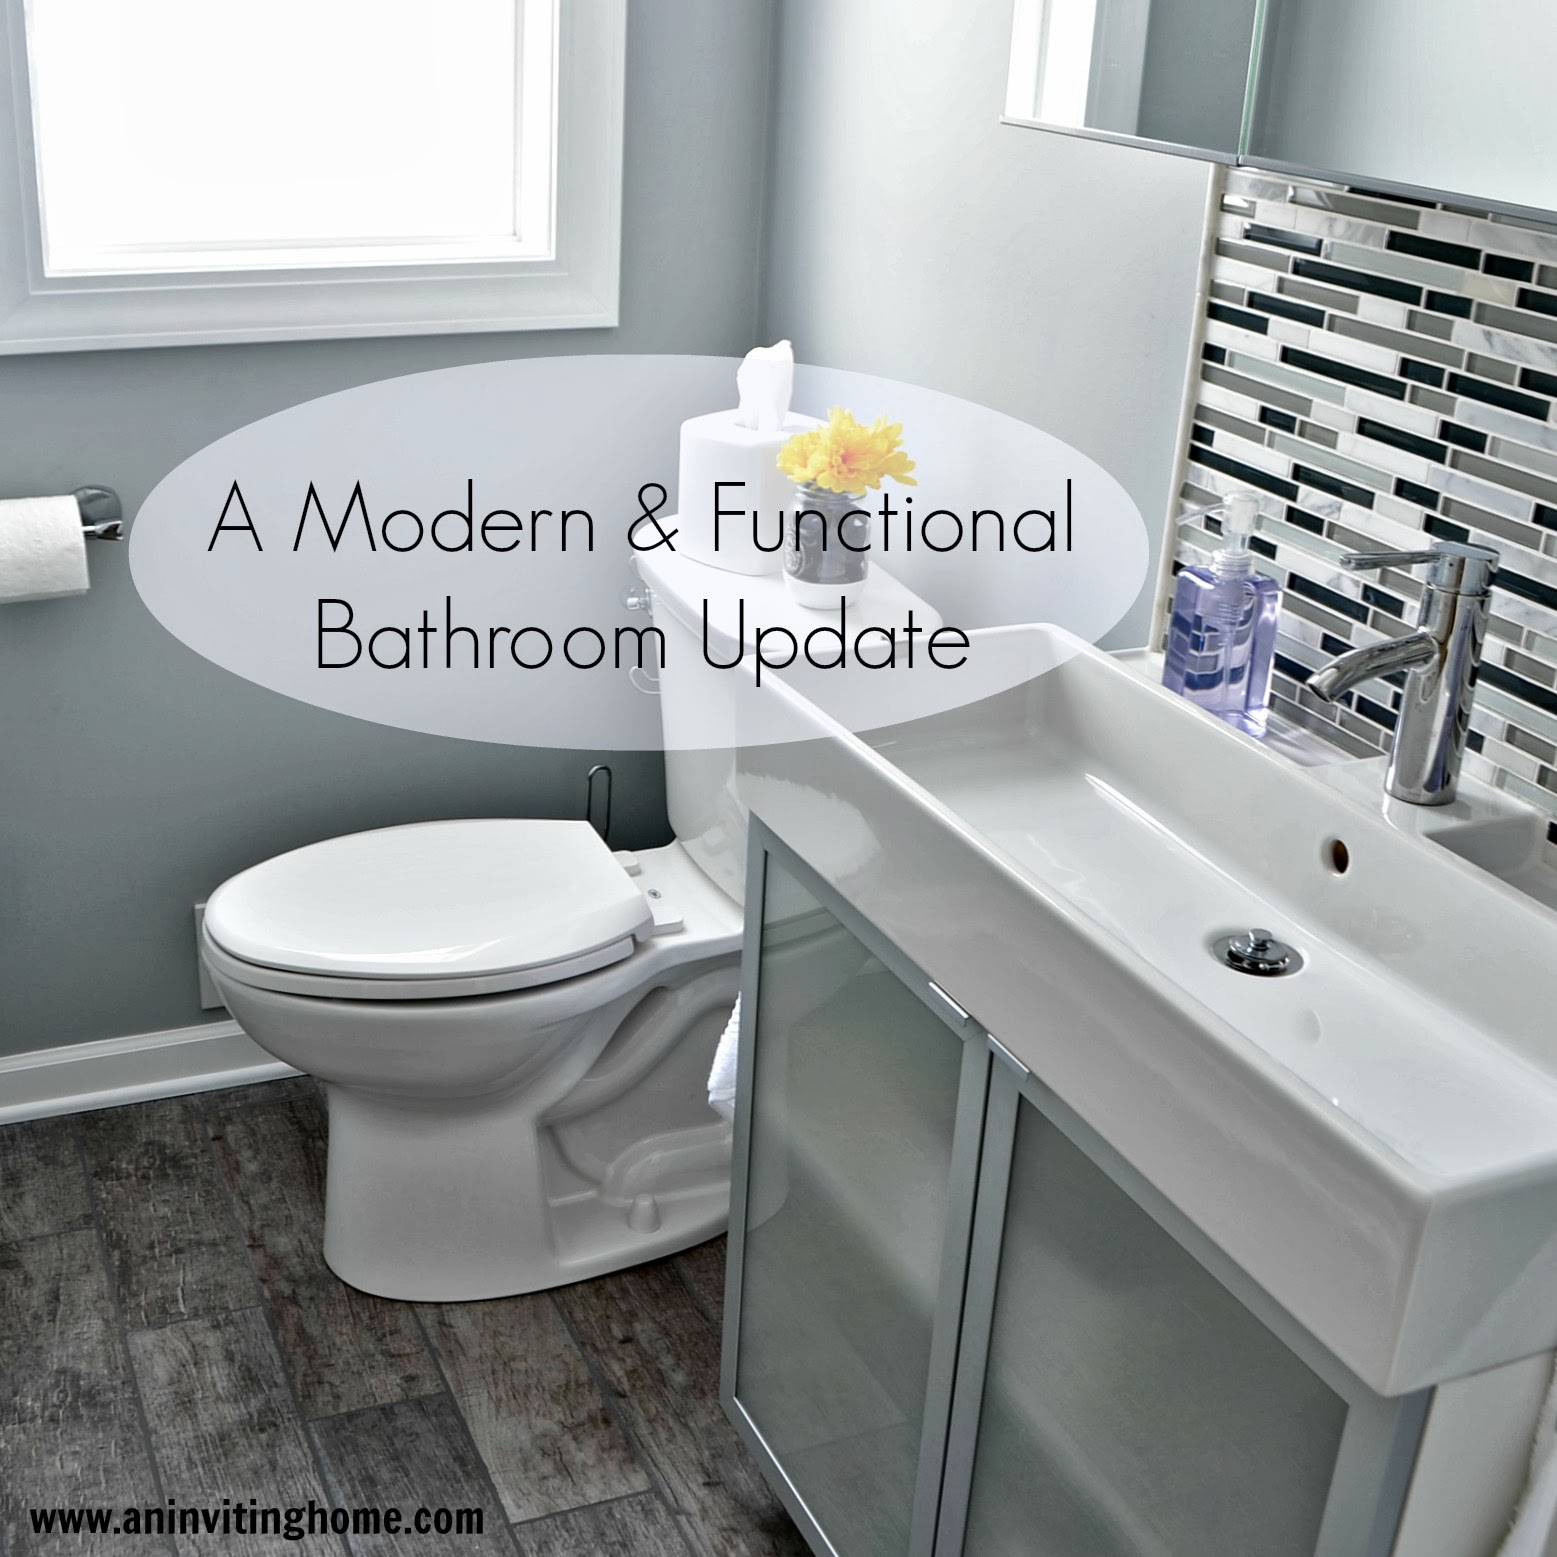 Combathroom Updates : we also remodeled our main level bathroom. Craziness! One bathroom ...